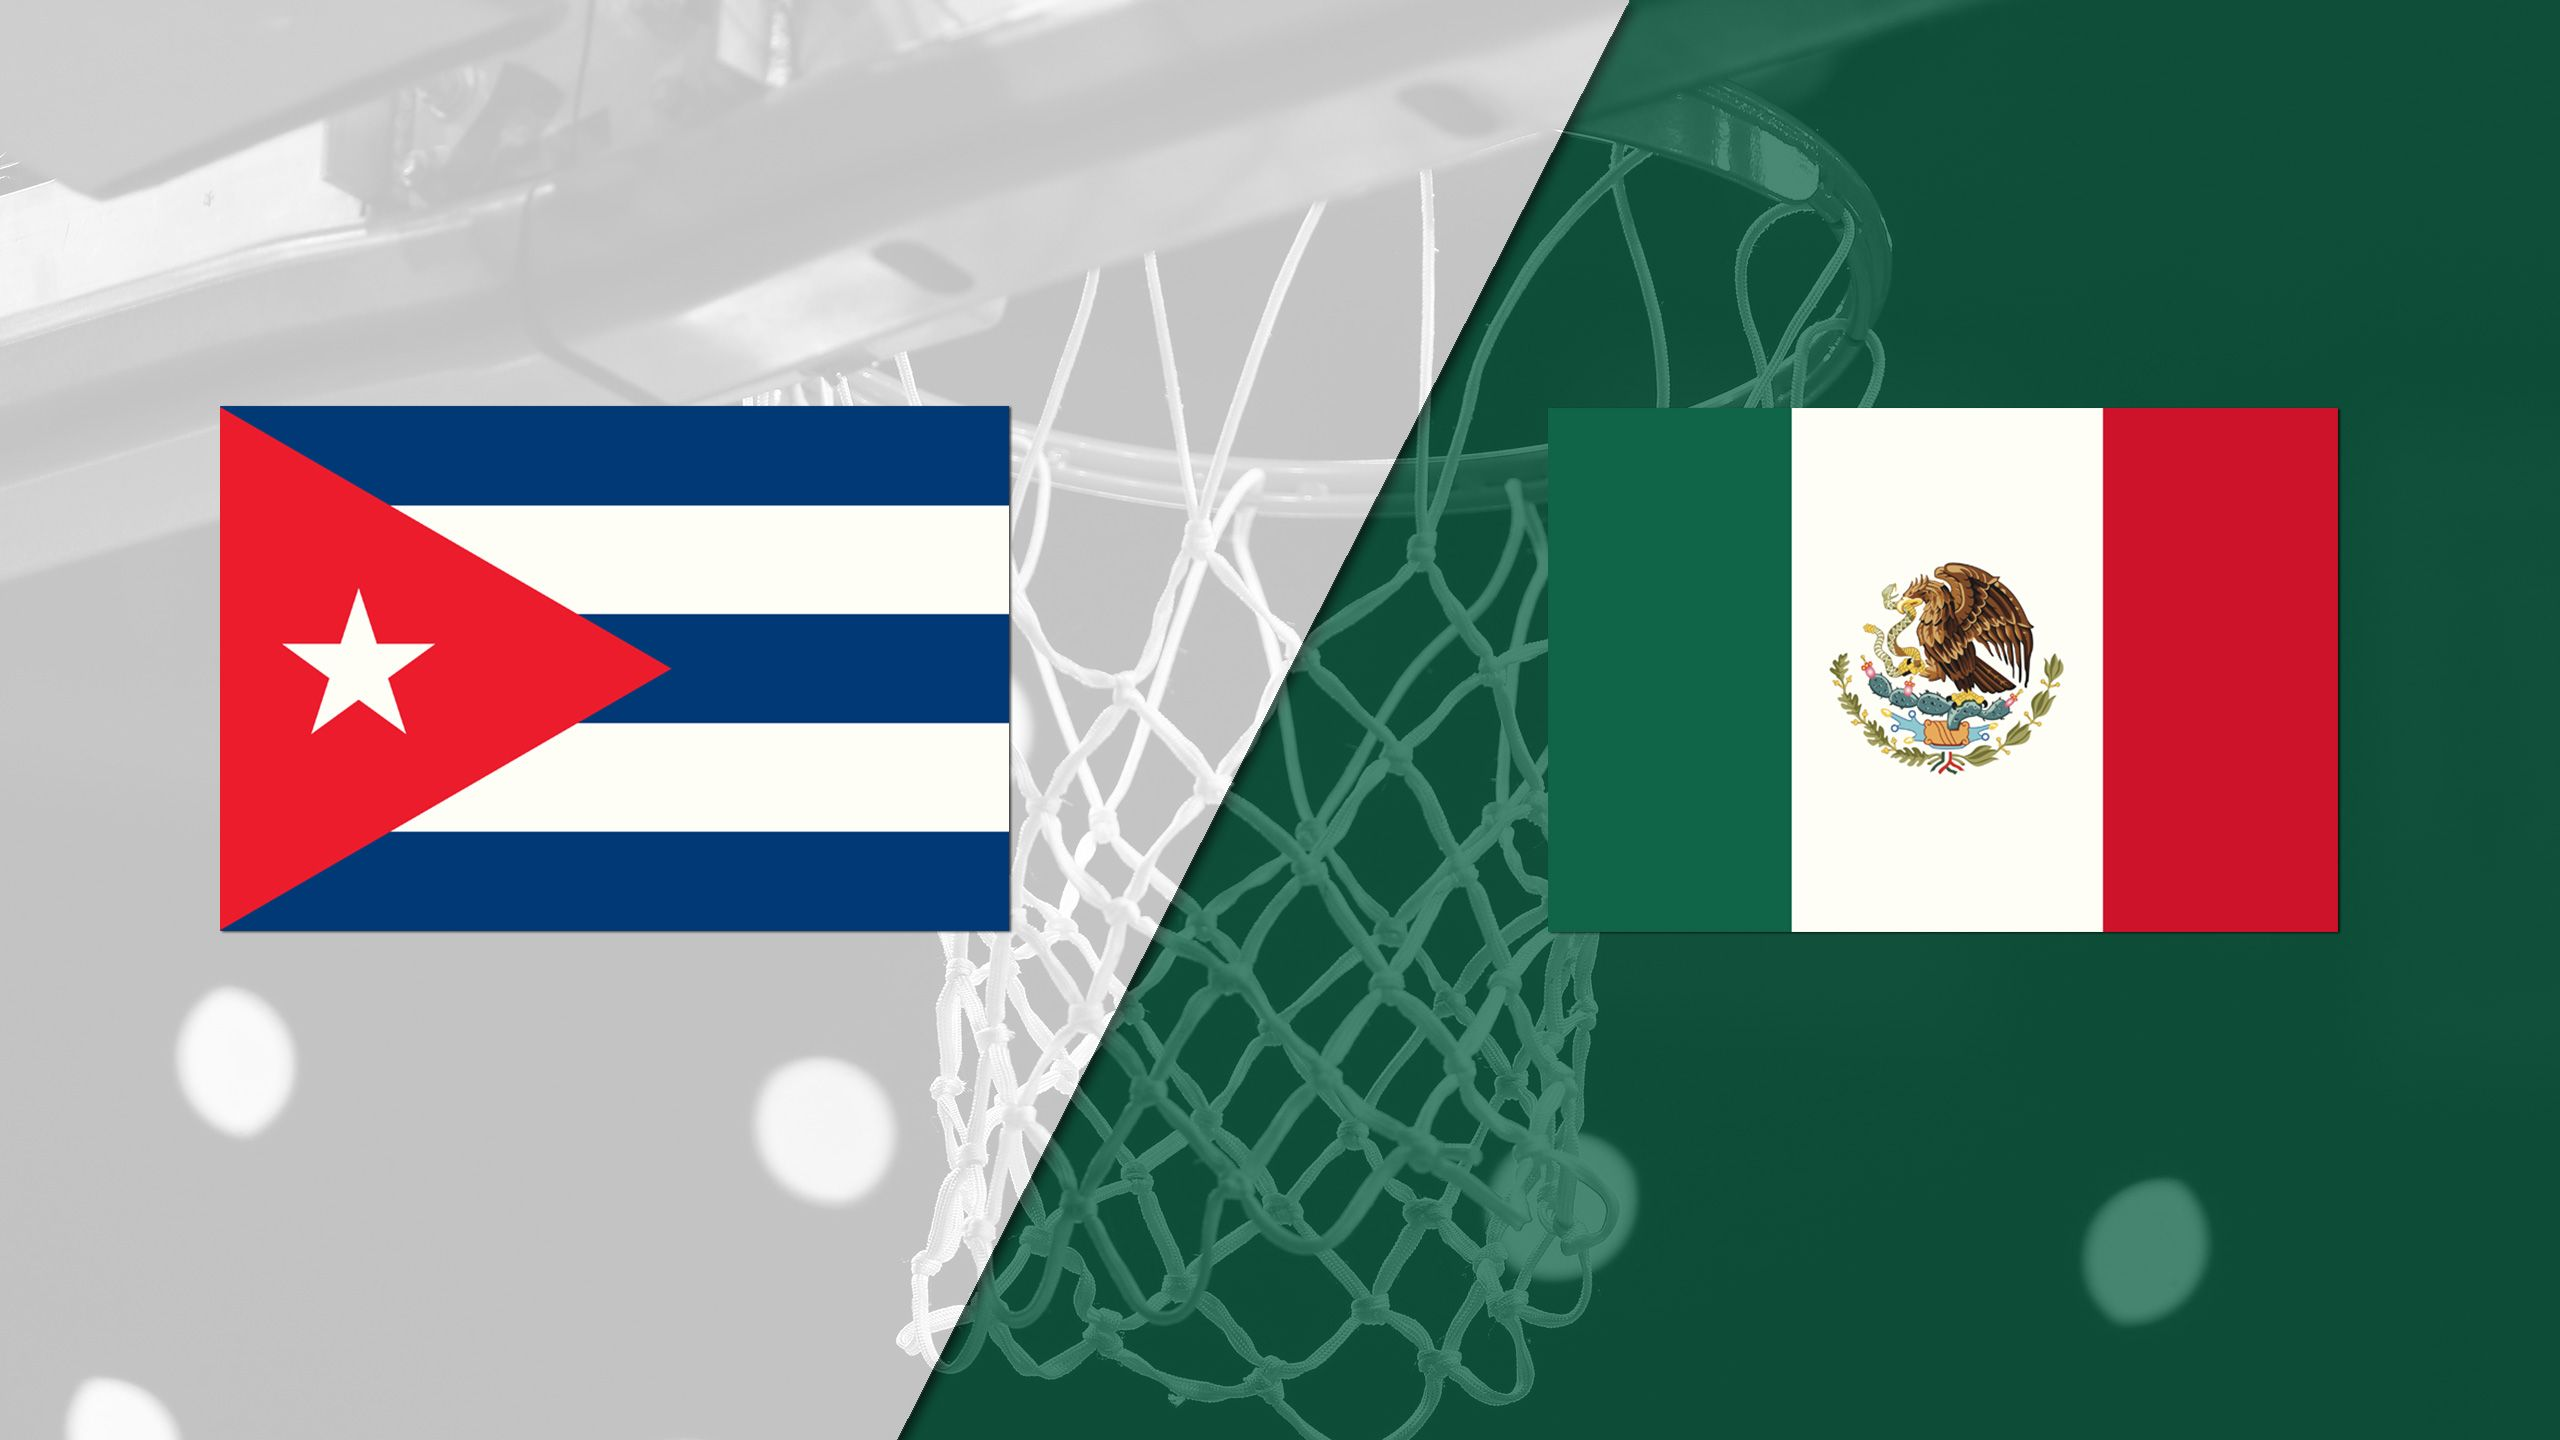 Cuba vs. Mexico (FIBA World Cup 2019 Qualifier)